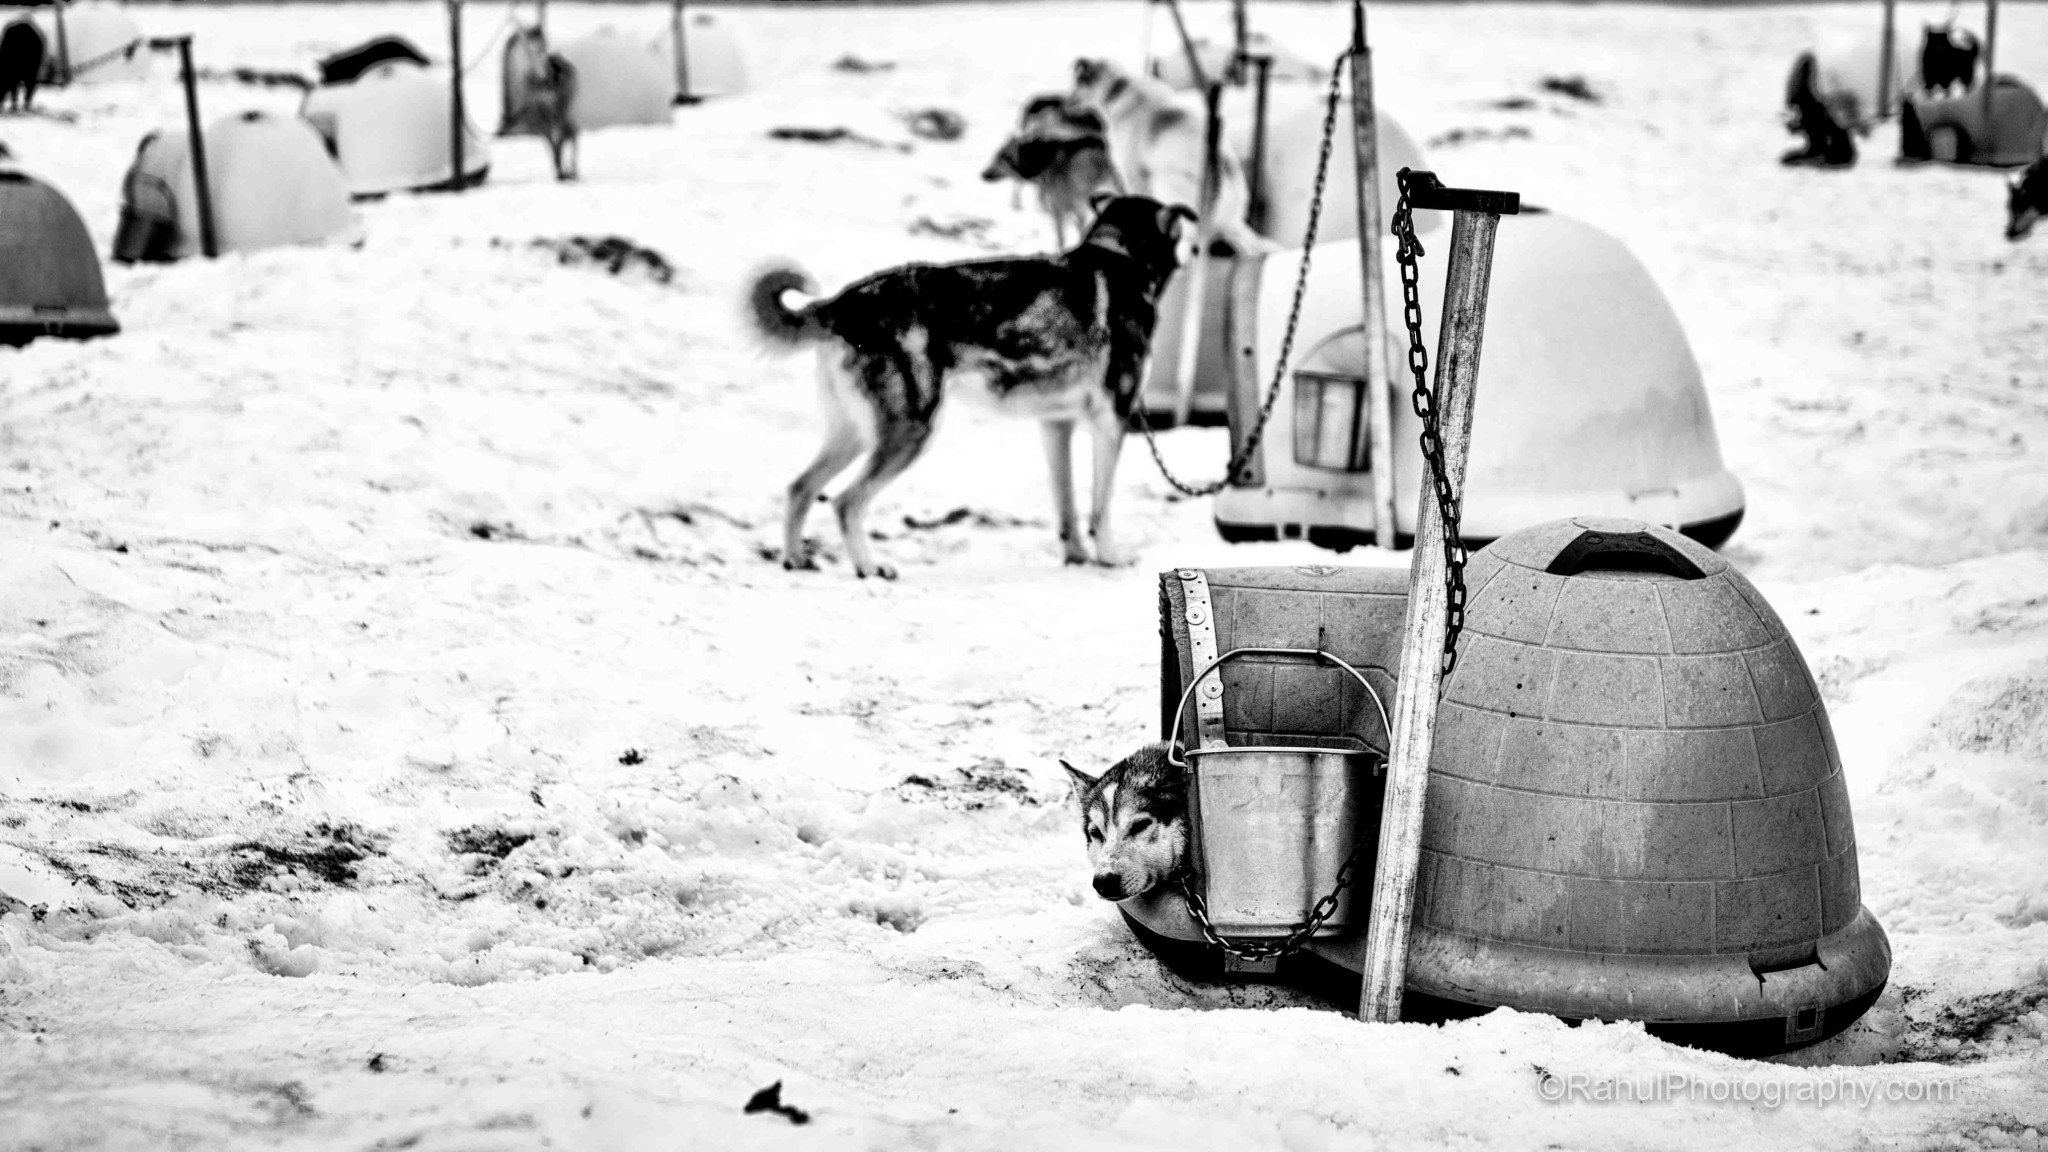 Dogs at Chugach Mountains